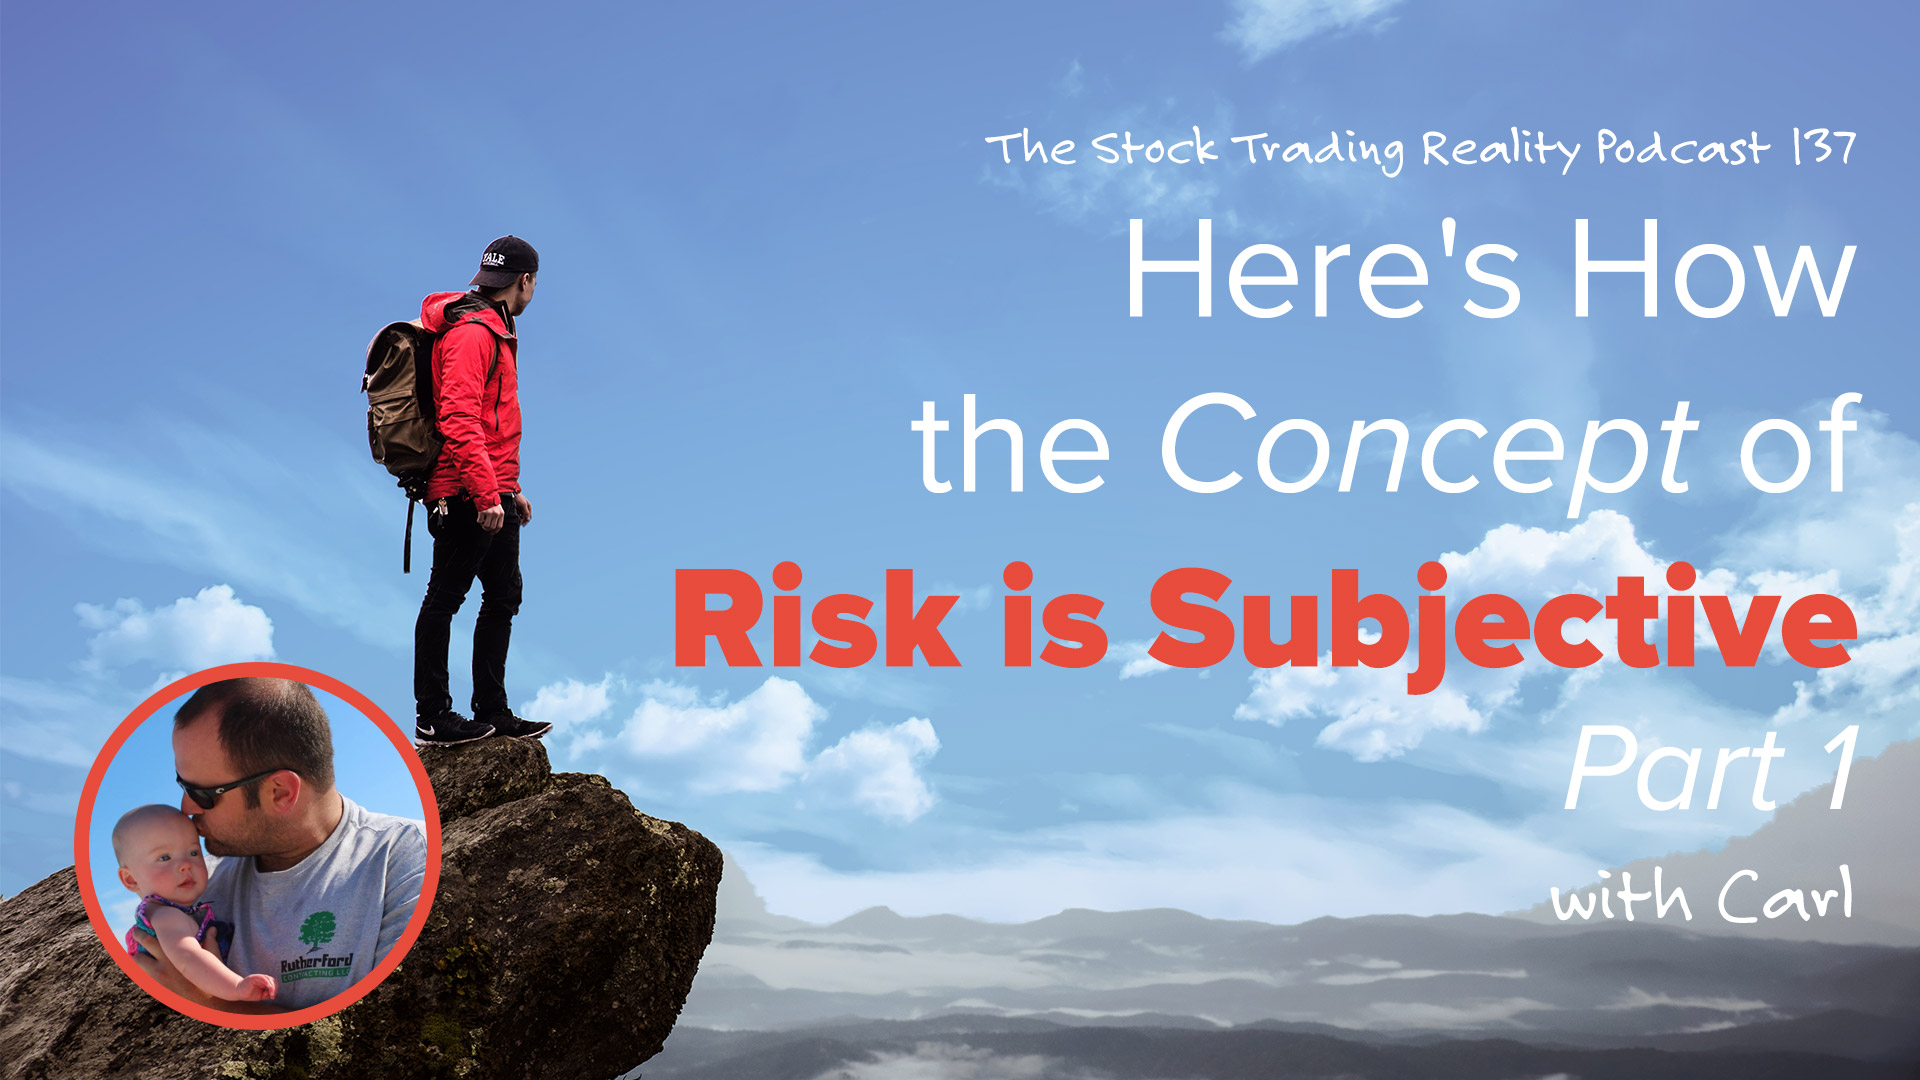 STR 137: Here's How the Concept of Risk is Subjective